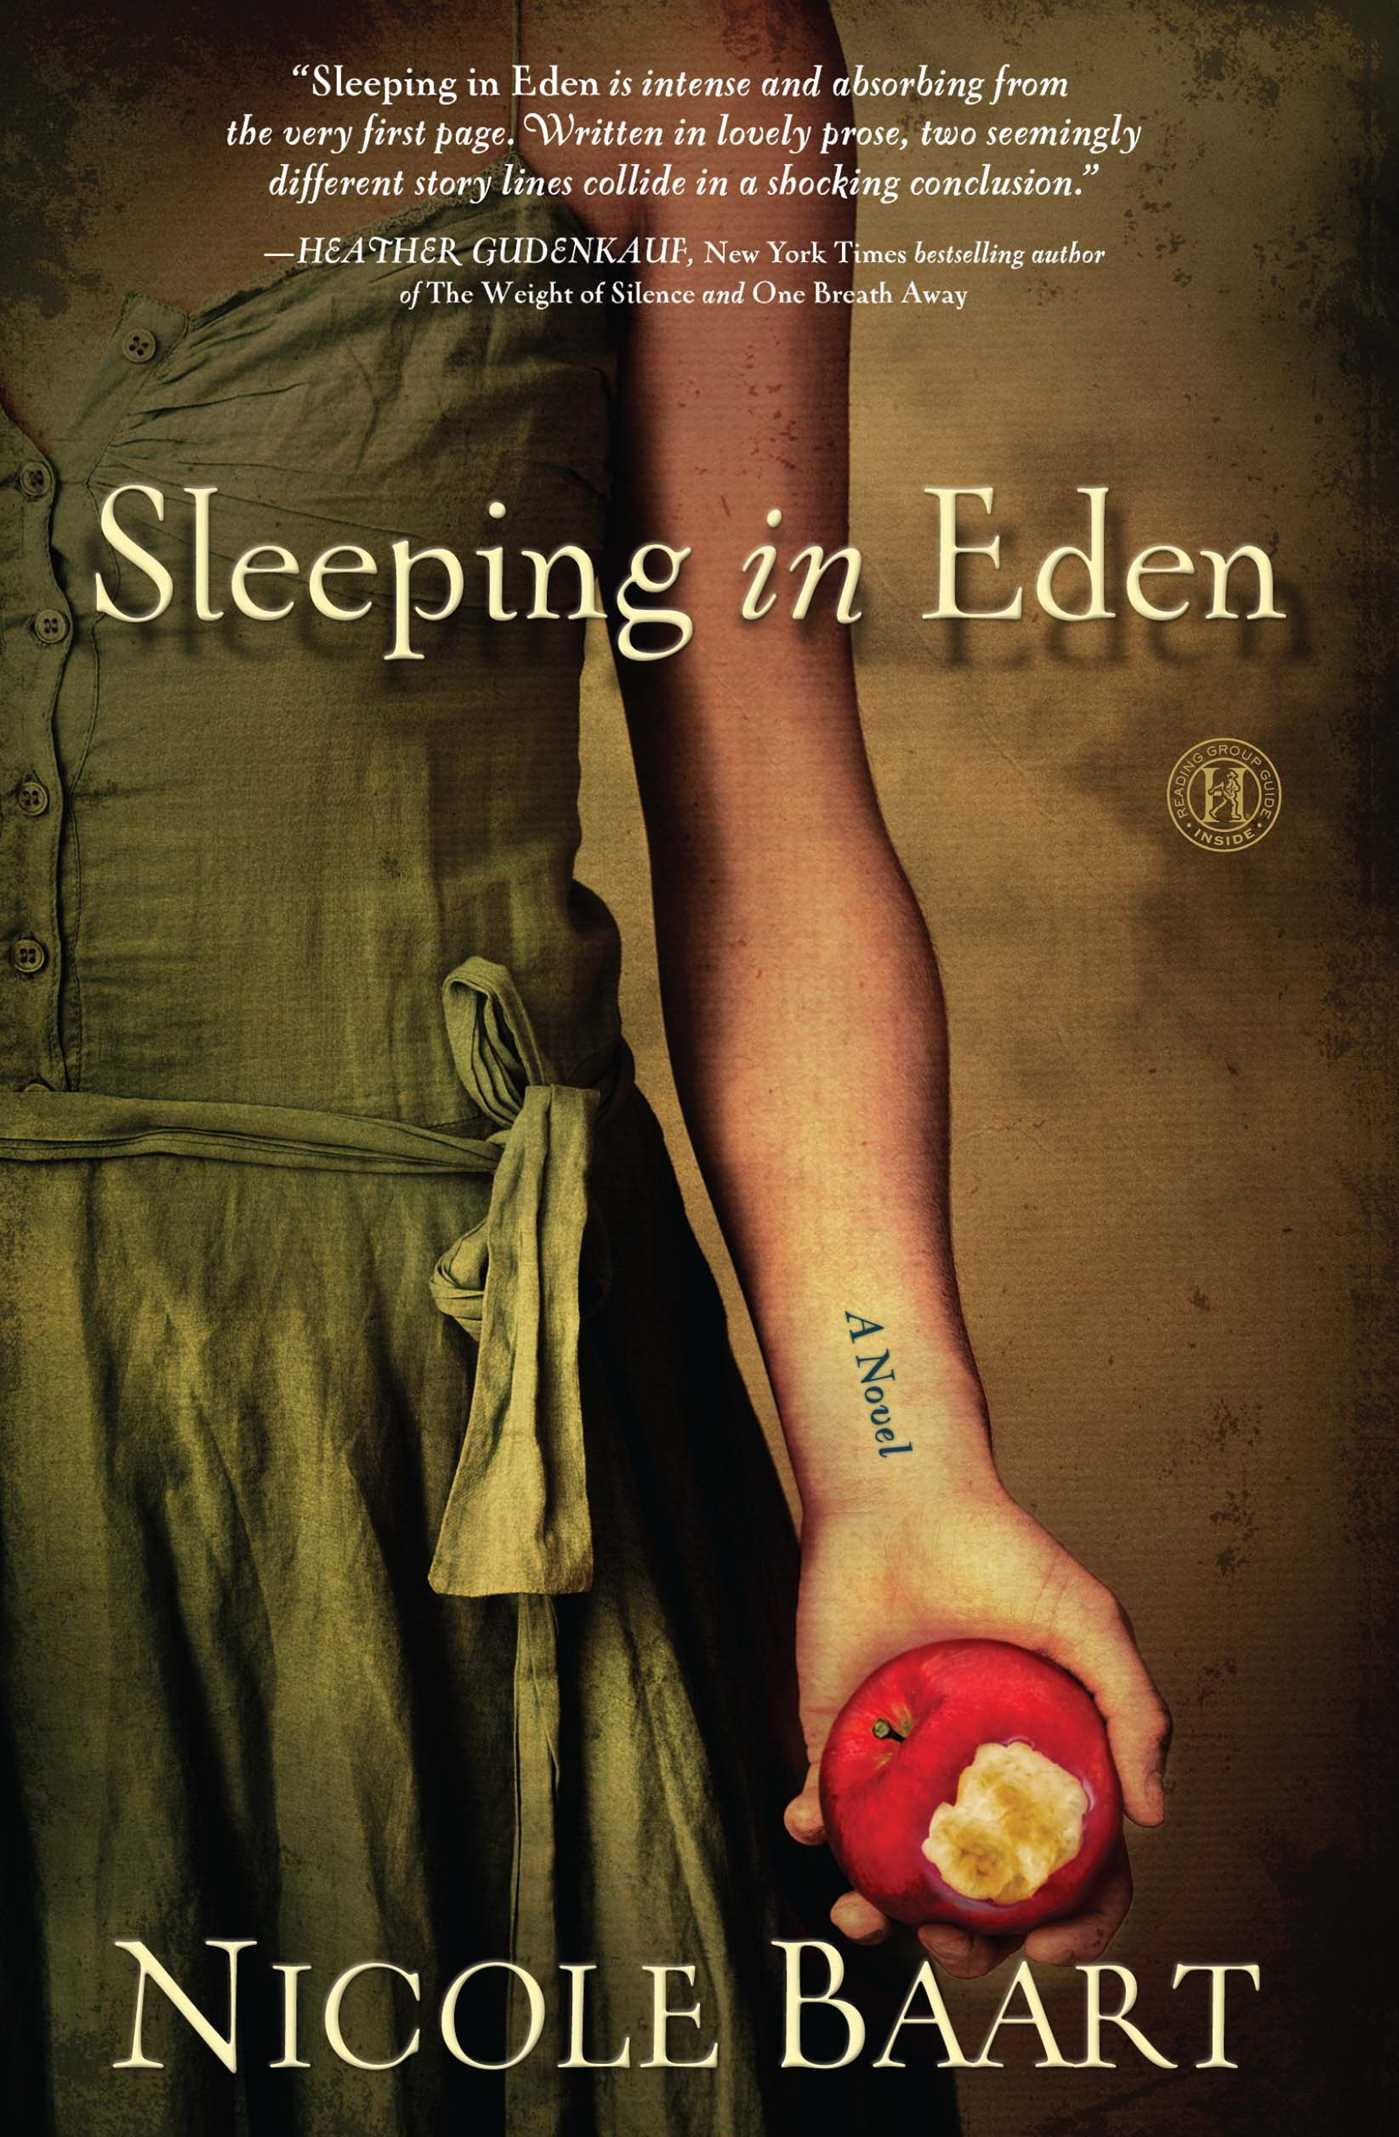 Sleeping in eden 9781439197370 hr